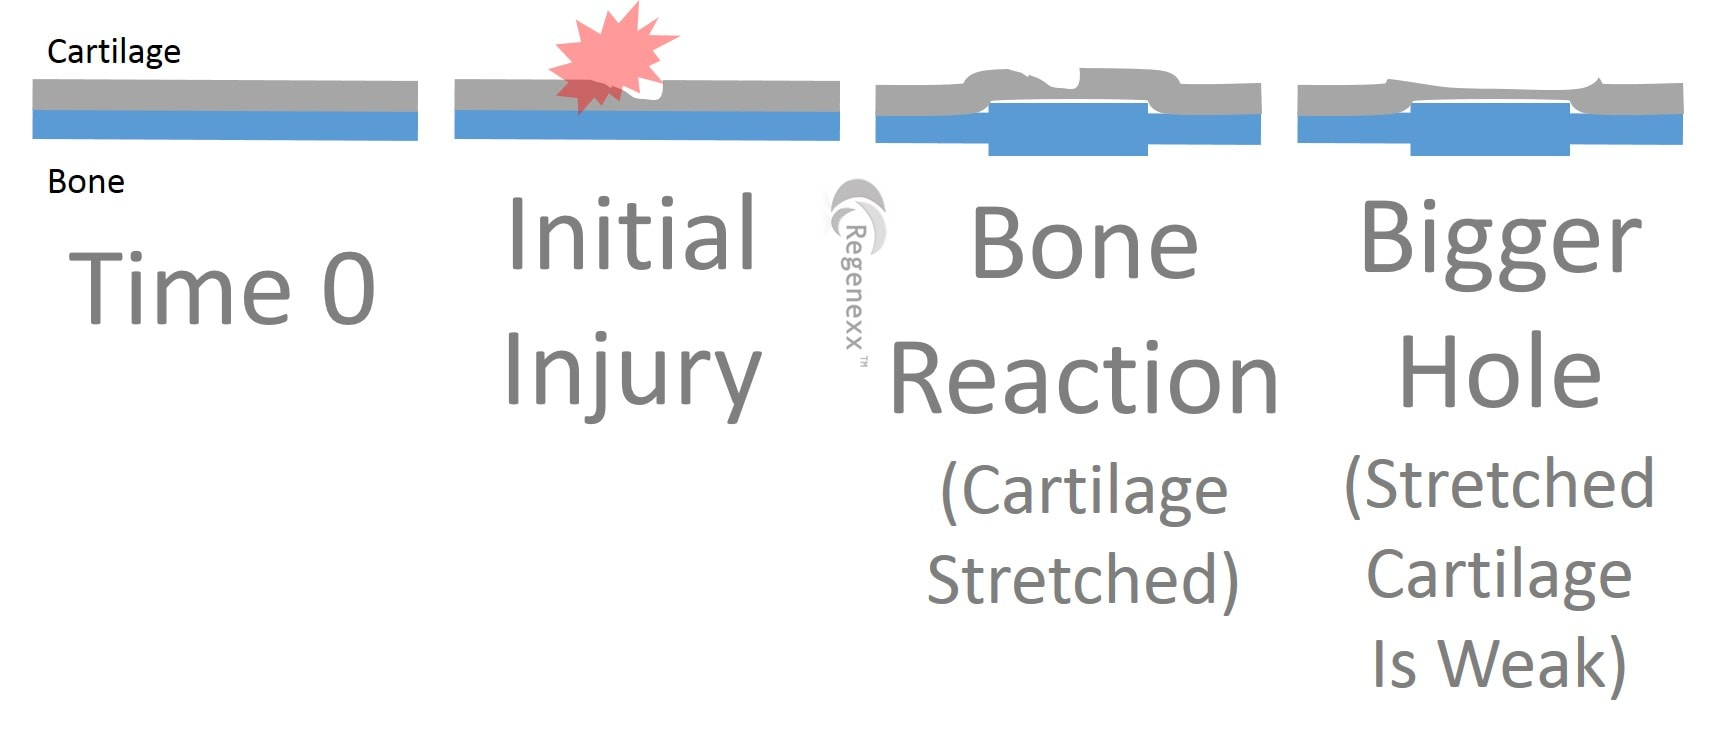 Hole in Cartilage